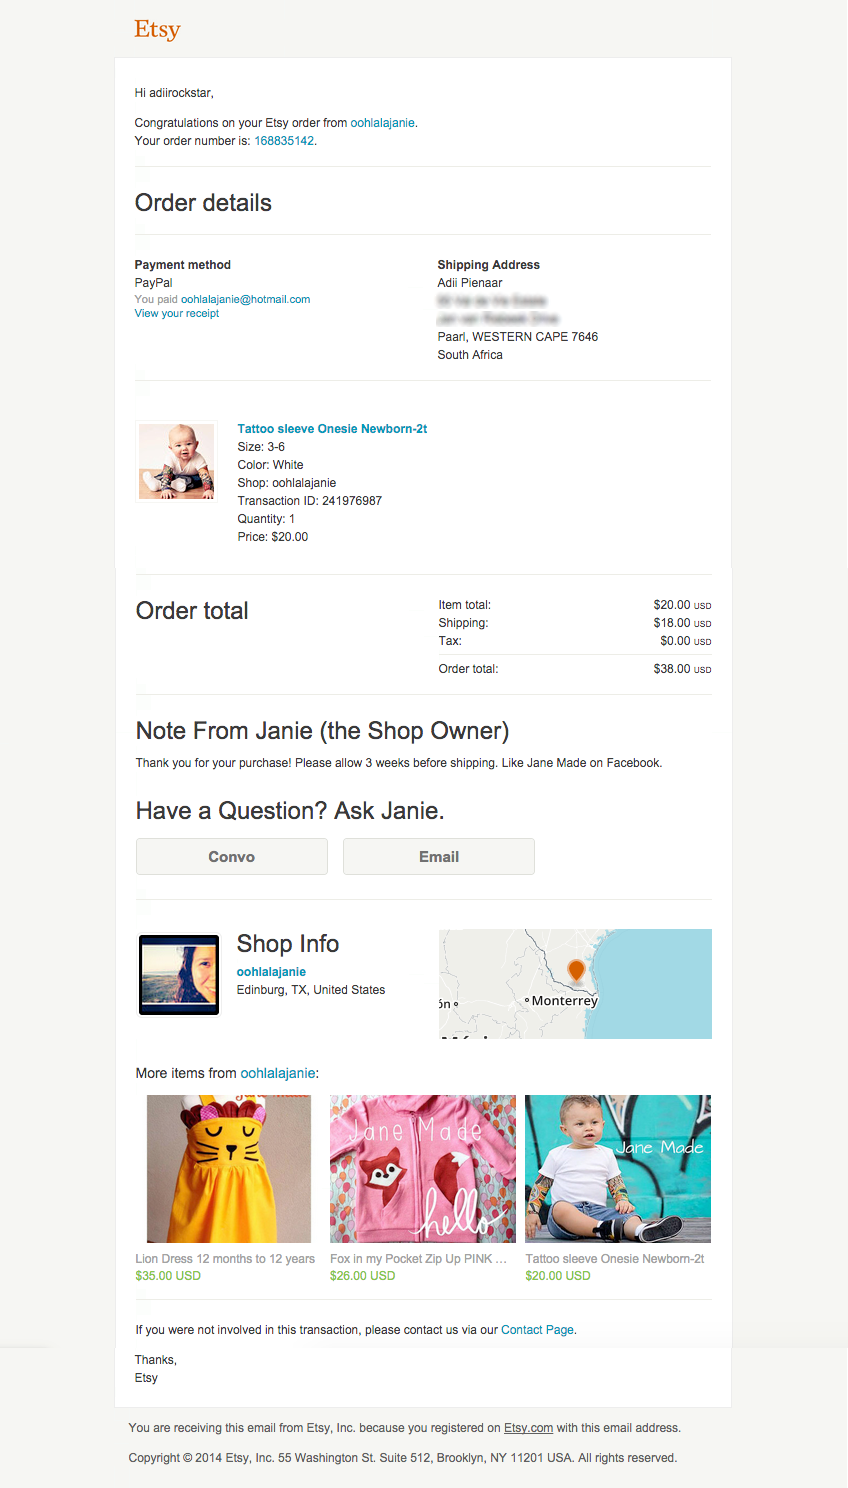 Purchase Confirmation Template 3 Latest Tips You Can Learn When Attending Purchase Confirmation Email Template Email Template Design Order Confirmation Email